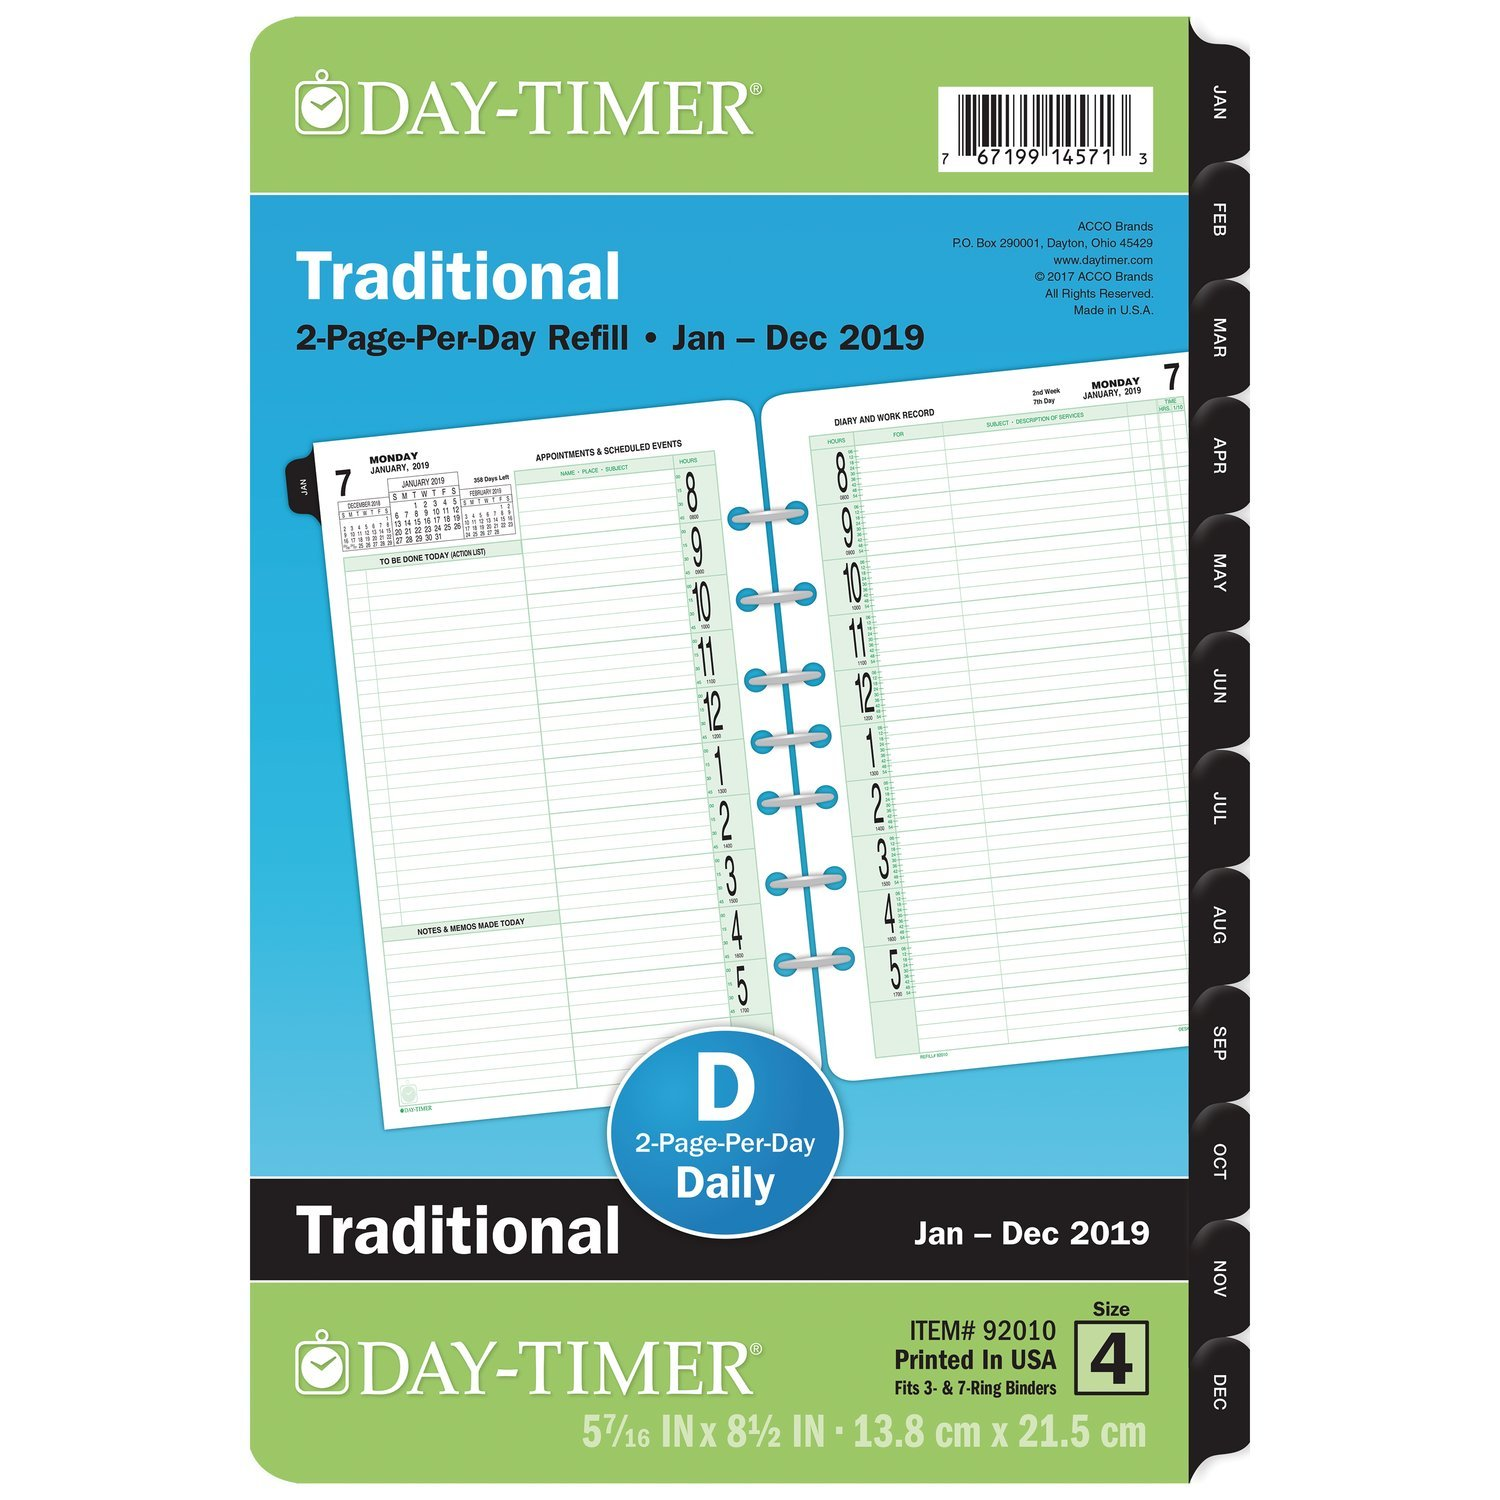 at-A-Glance 2019 Daily Planner Refill, 5-1/2 x 8-1/2, Desk Size 4, Two Pages Per Day (92010) 5-1/2 x 8-1/2 ACCO Brands 920101901